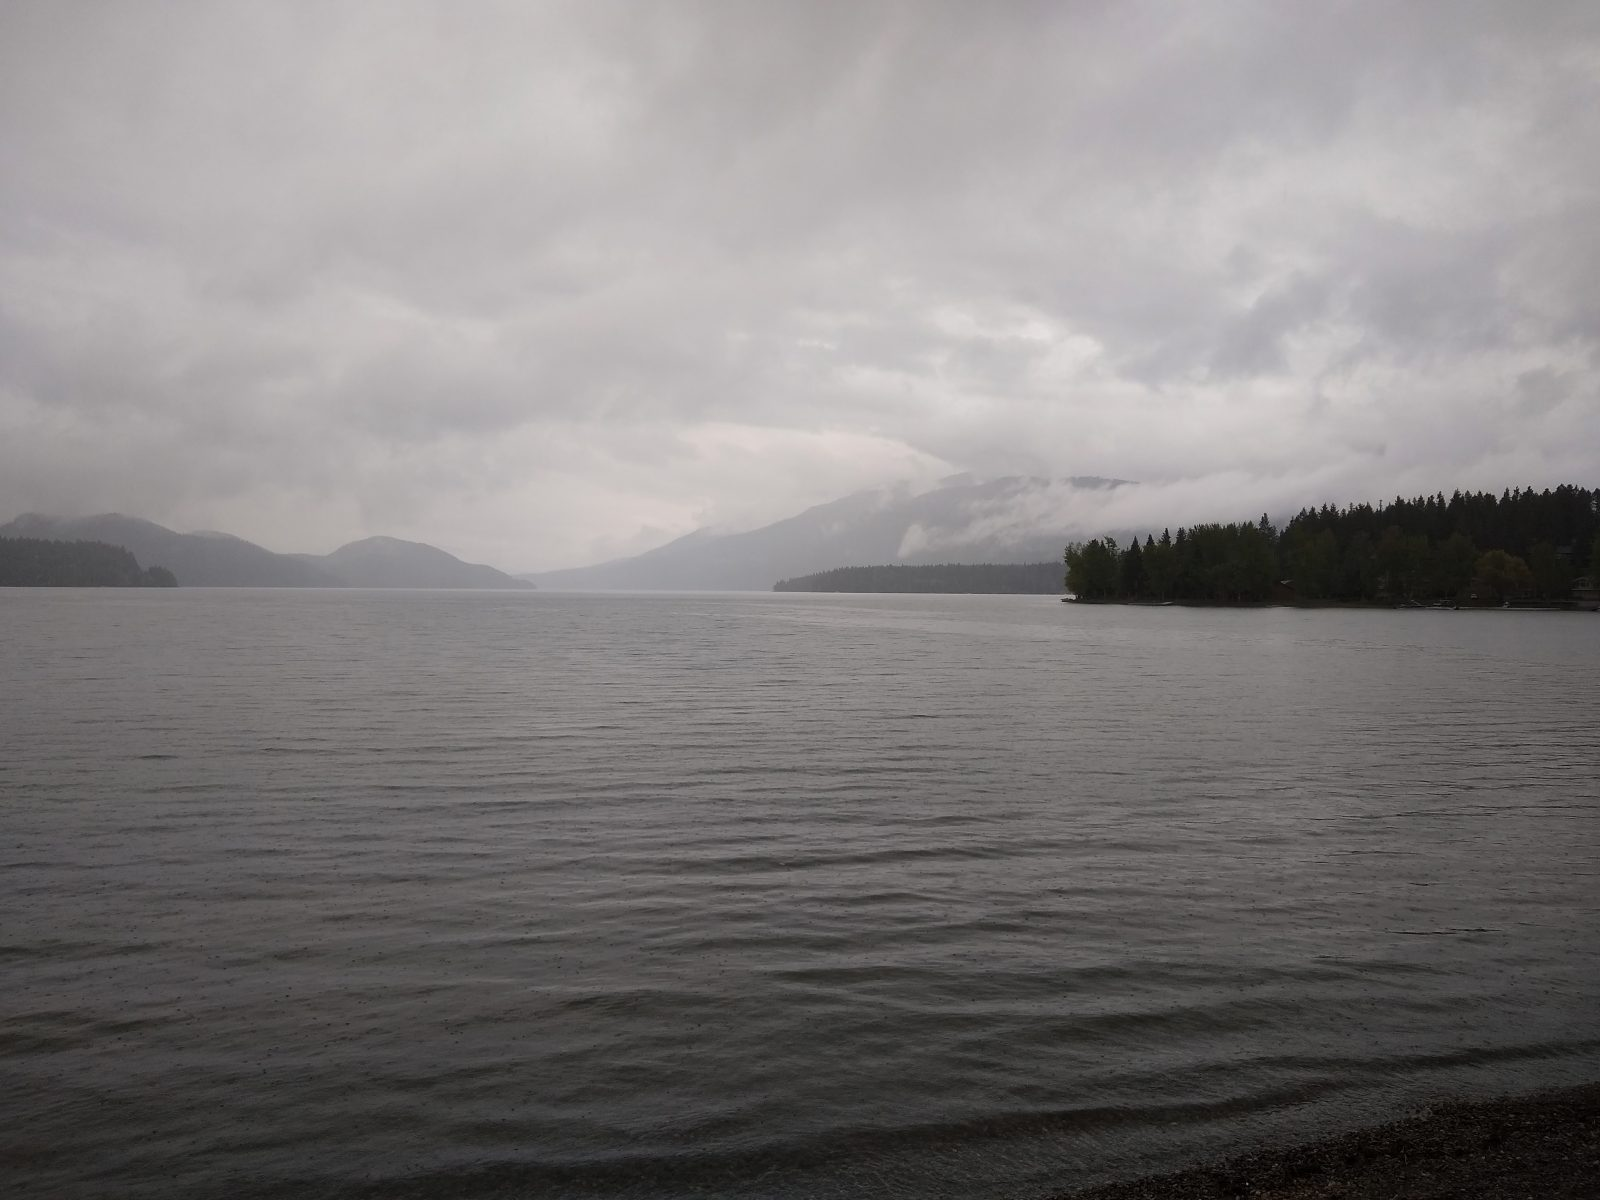 Whitefish Lake - May 20, 2020